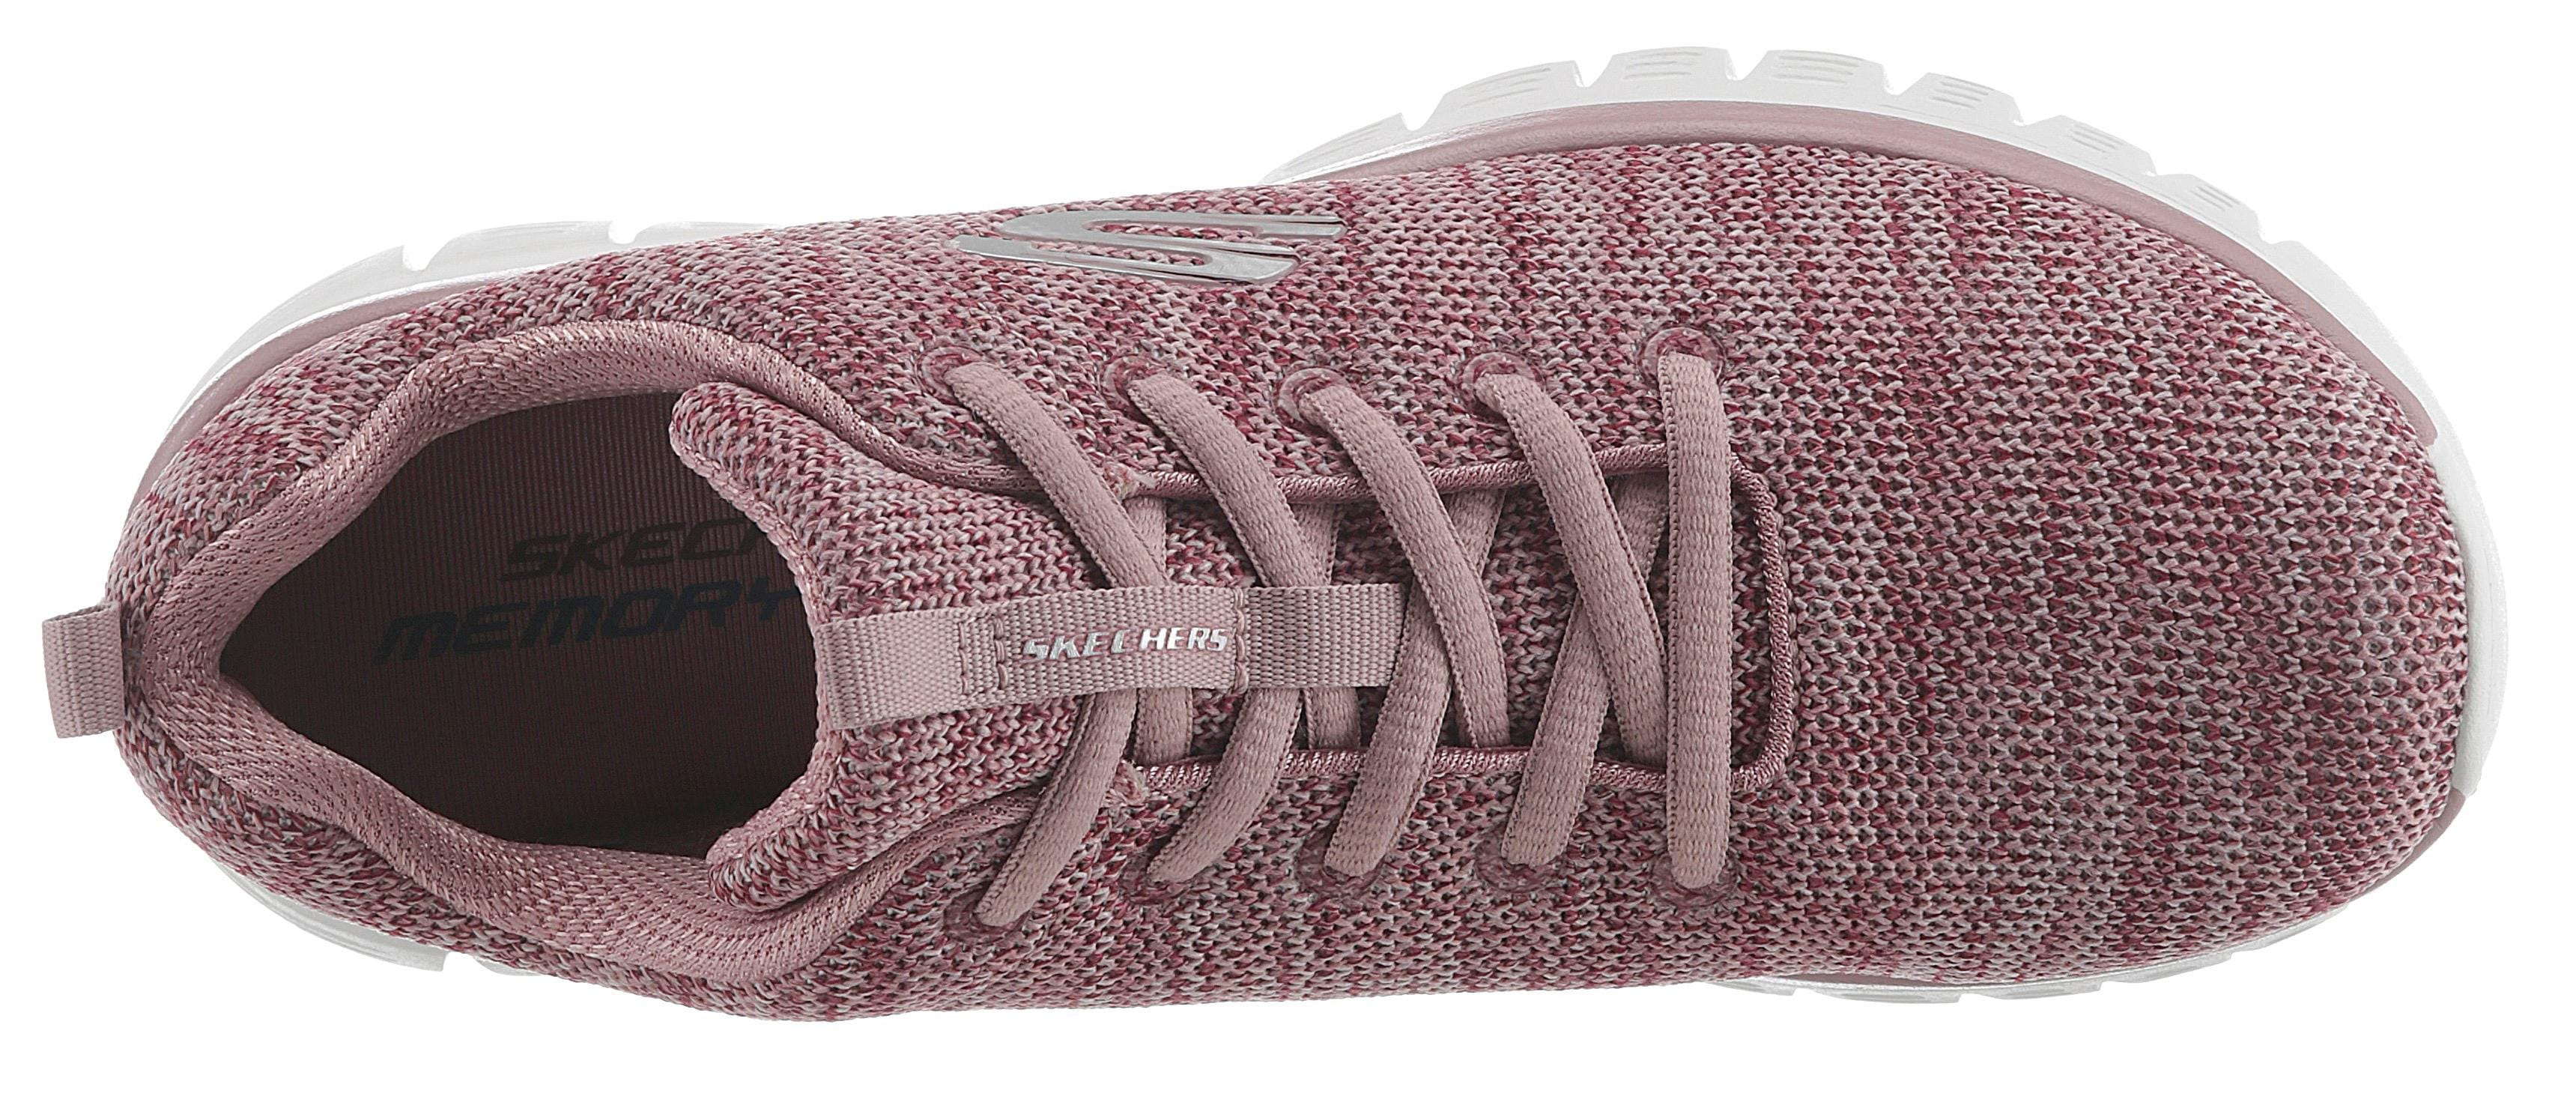 Skechers Turnschuhe Graceful - - - Twisted Fortune Damenmode Turnschuhe Damen Turnschuhe ae7bd9